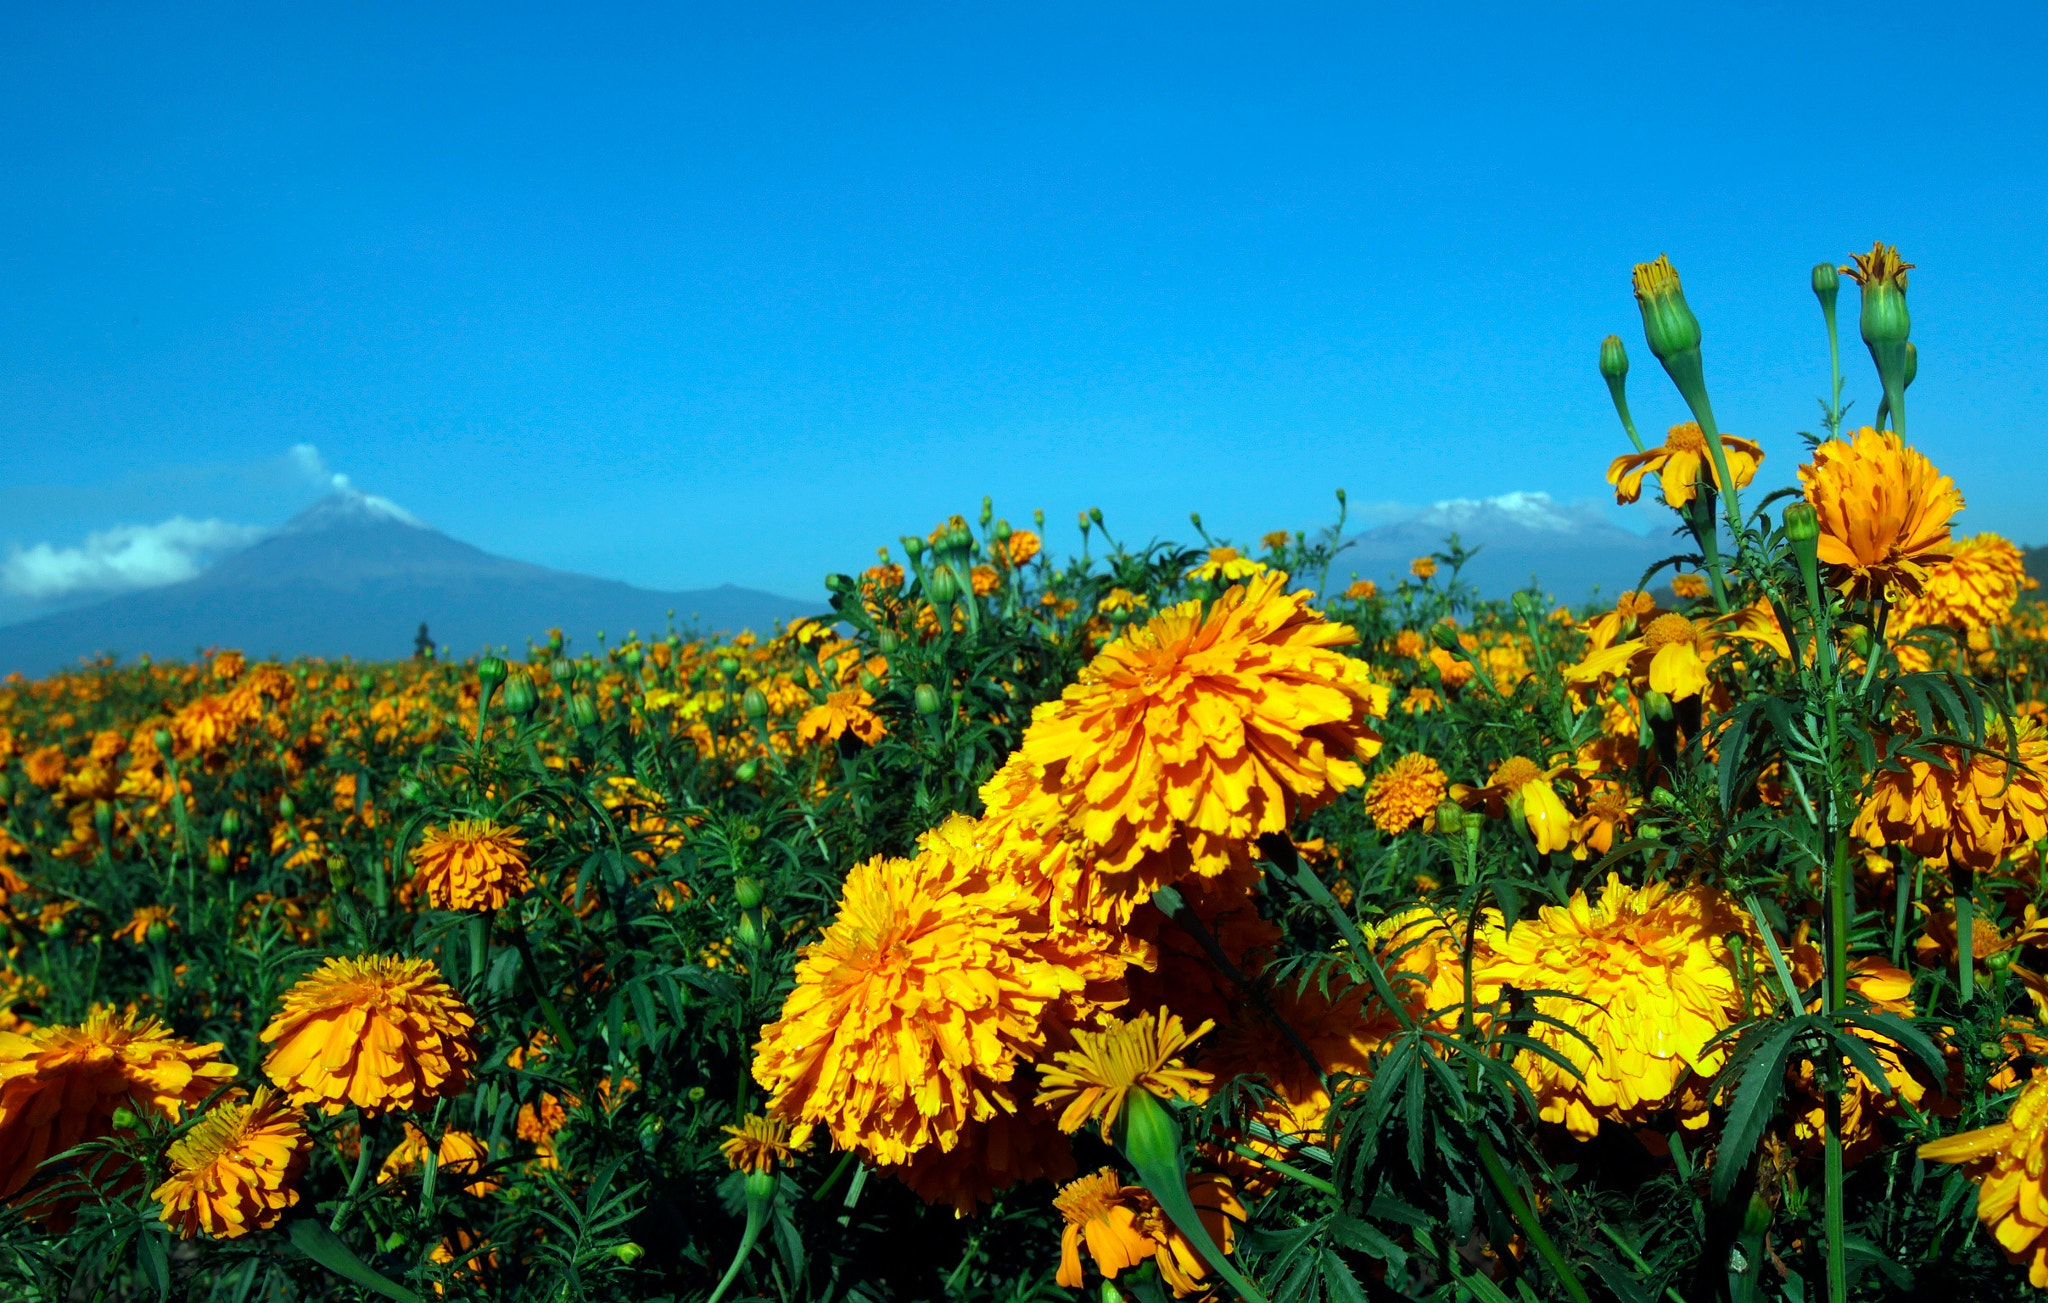 Photograph Flowers field and volcano by Cristobal Garciaferro Rubio on 500px